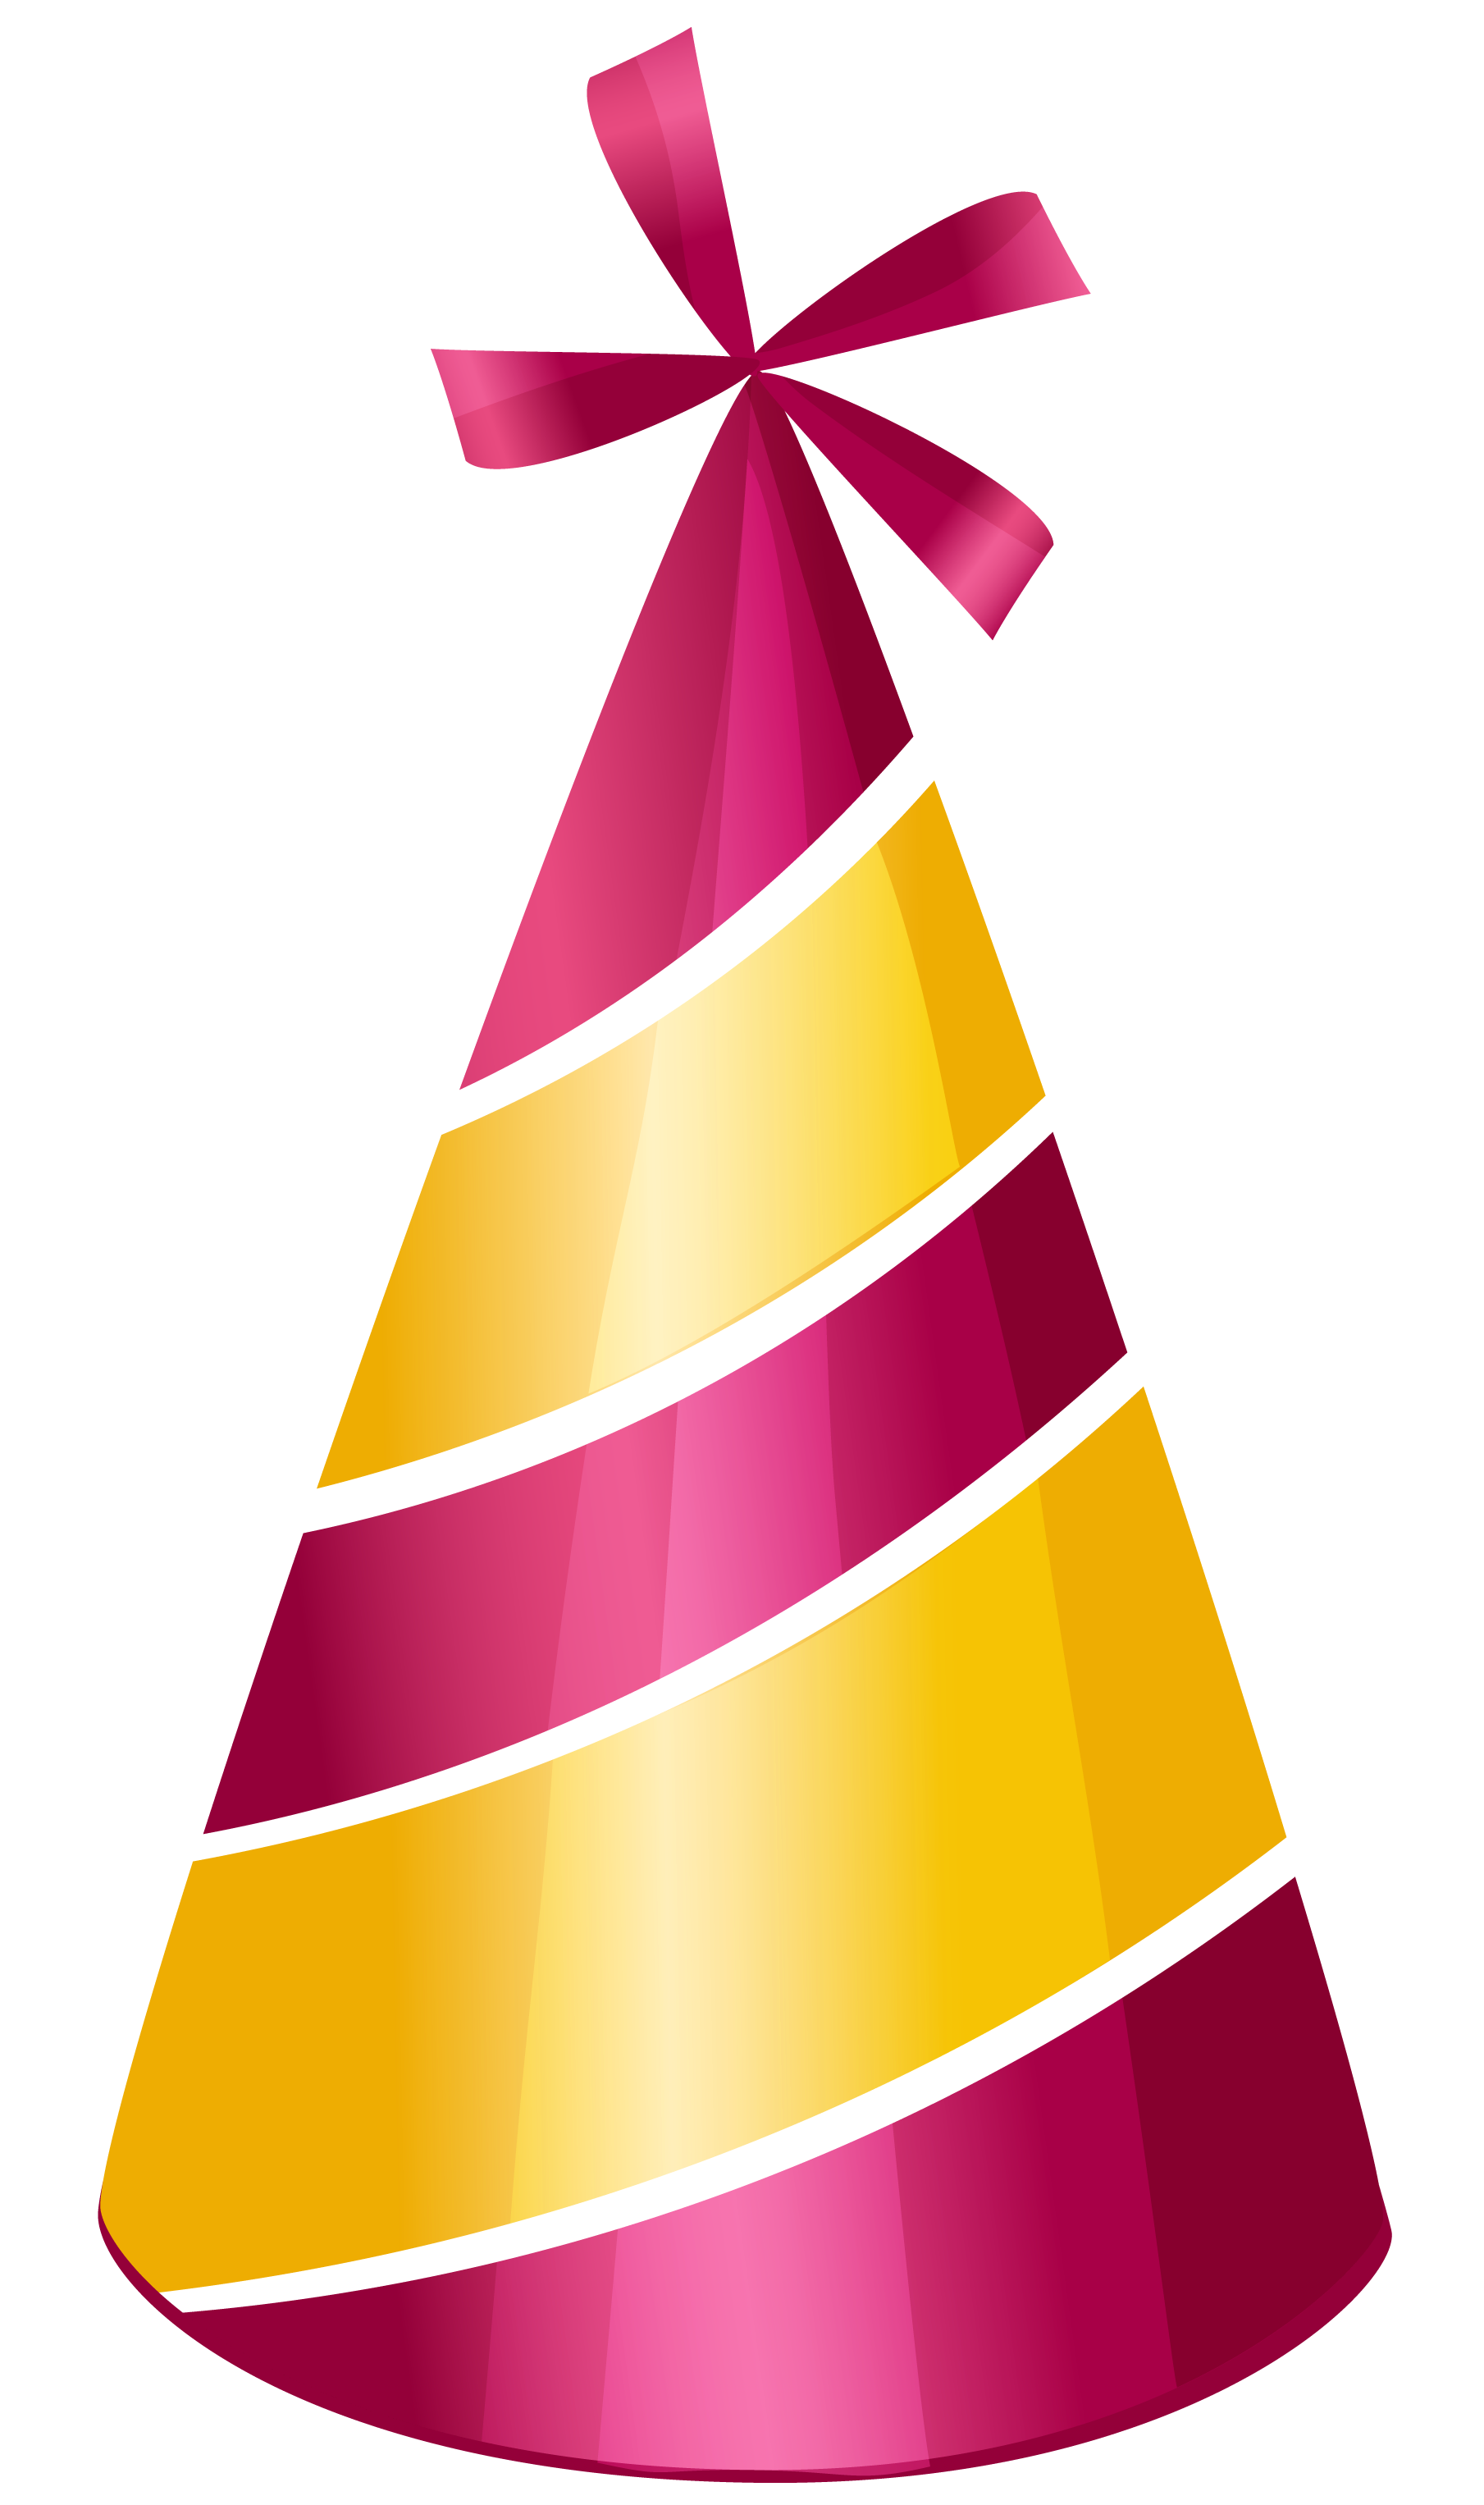 Hand clipart party. Birthday hat png transparent